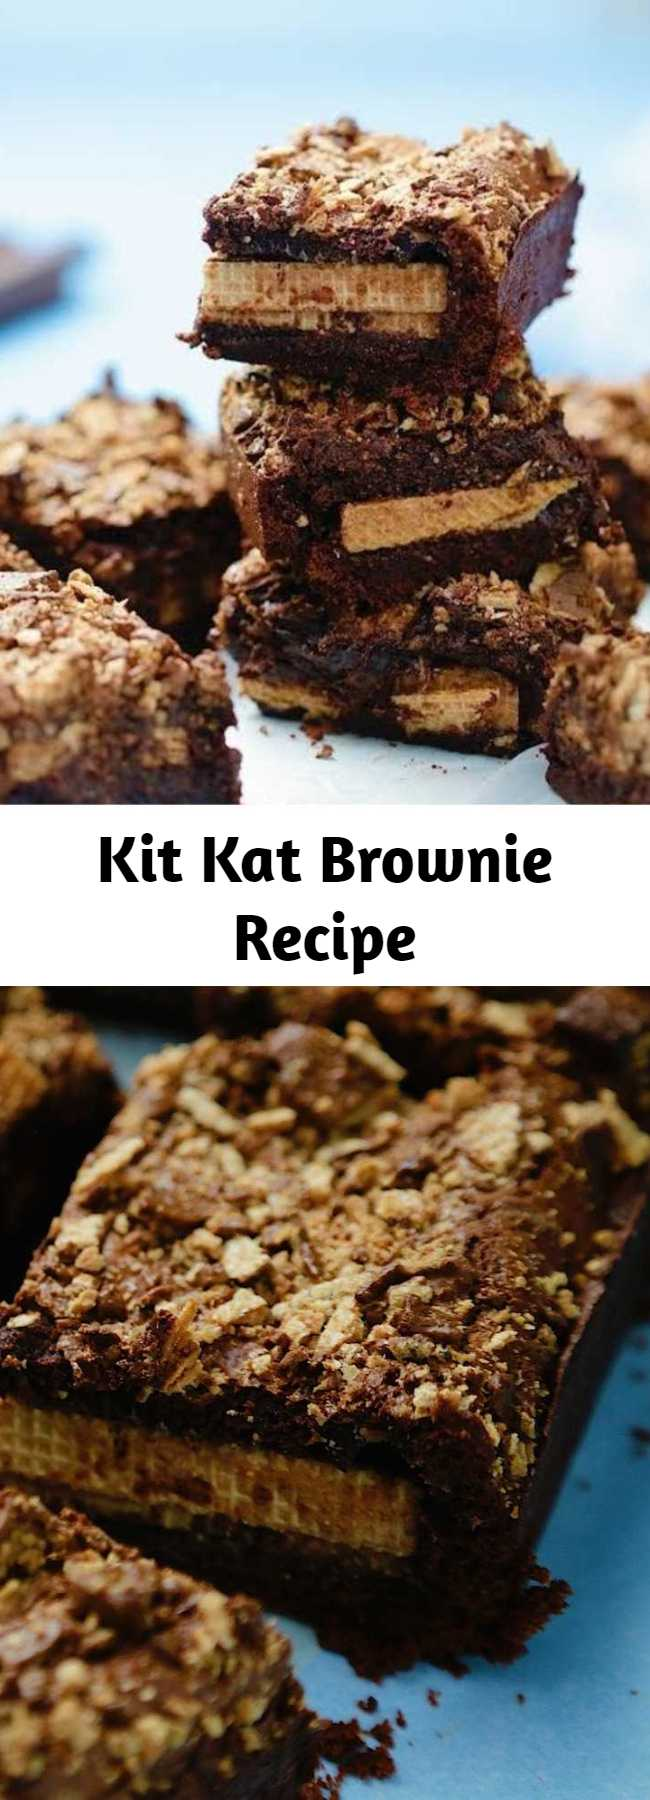 Kit Kat Brownie Recipe - We added some Kit Kats and took brownies to a whole new level.